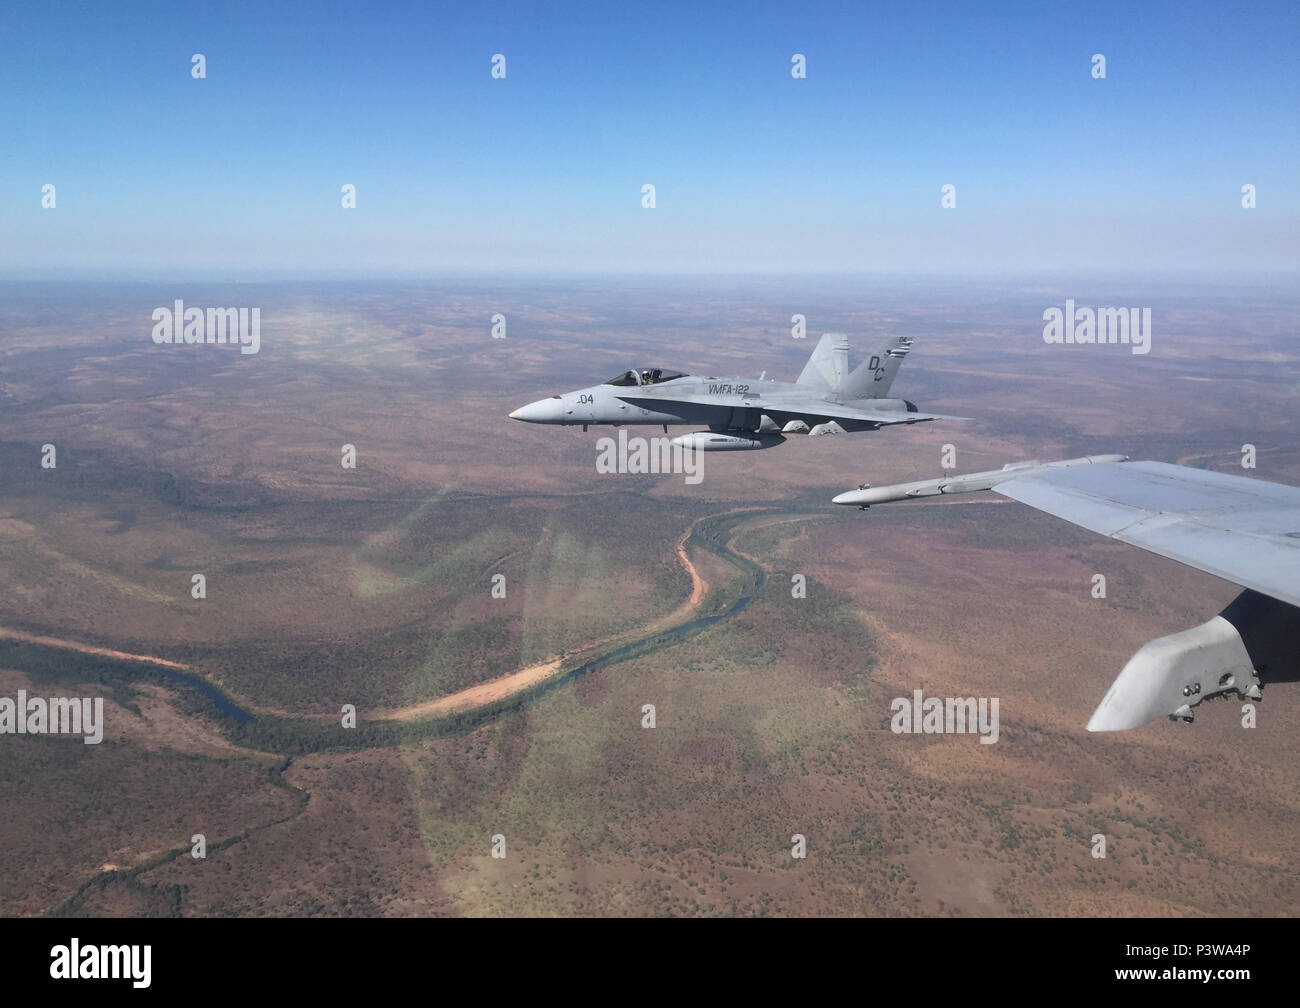 F/A-18C Hornets with Marine Fighter Attack Squadron (VMFA)122 conduct air operations during Exercise Pitch Black 2016 at Royal Australian Air Force Base Tindal, Australia, July 25, 2016. Pitch Black 16 is a biennial, three week, multinational, large-force training exercise hosted by RAAF Tindal. The allied nation squadrons will execute day and night flights from Tindal to Darwin, while performing large force offensive counter-air and offensive air support operations throughout the exercise. (U.S. Marine Corps courtesy photo) - Stock Image